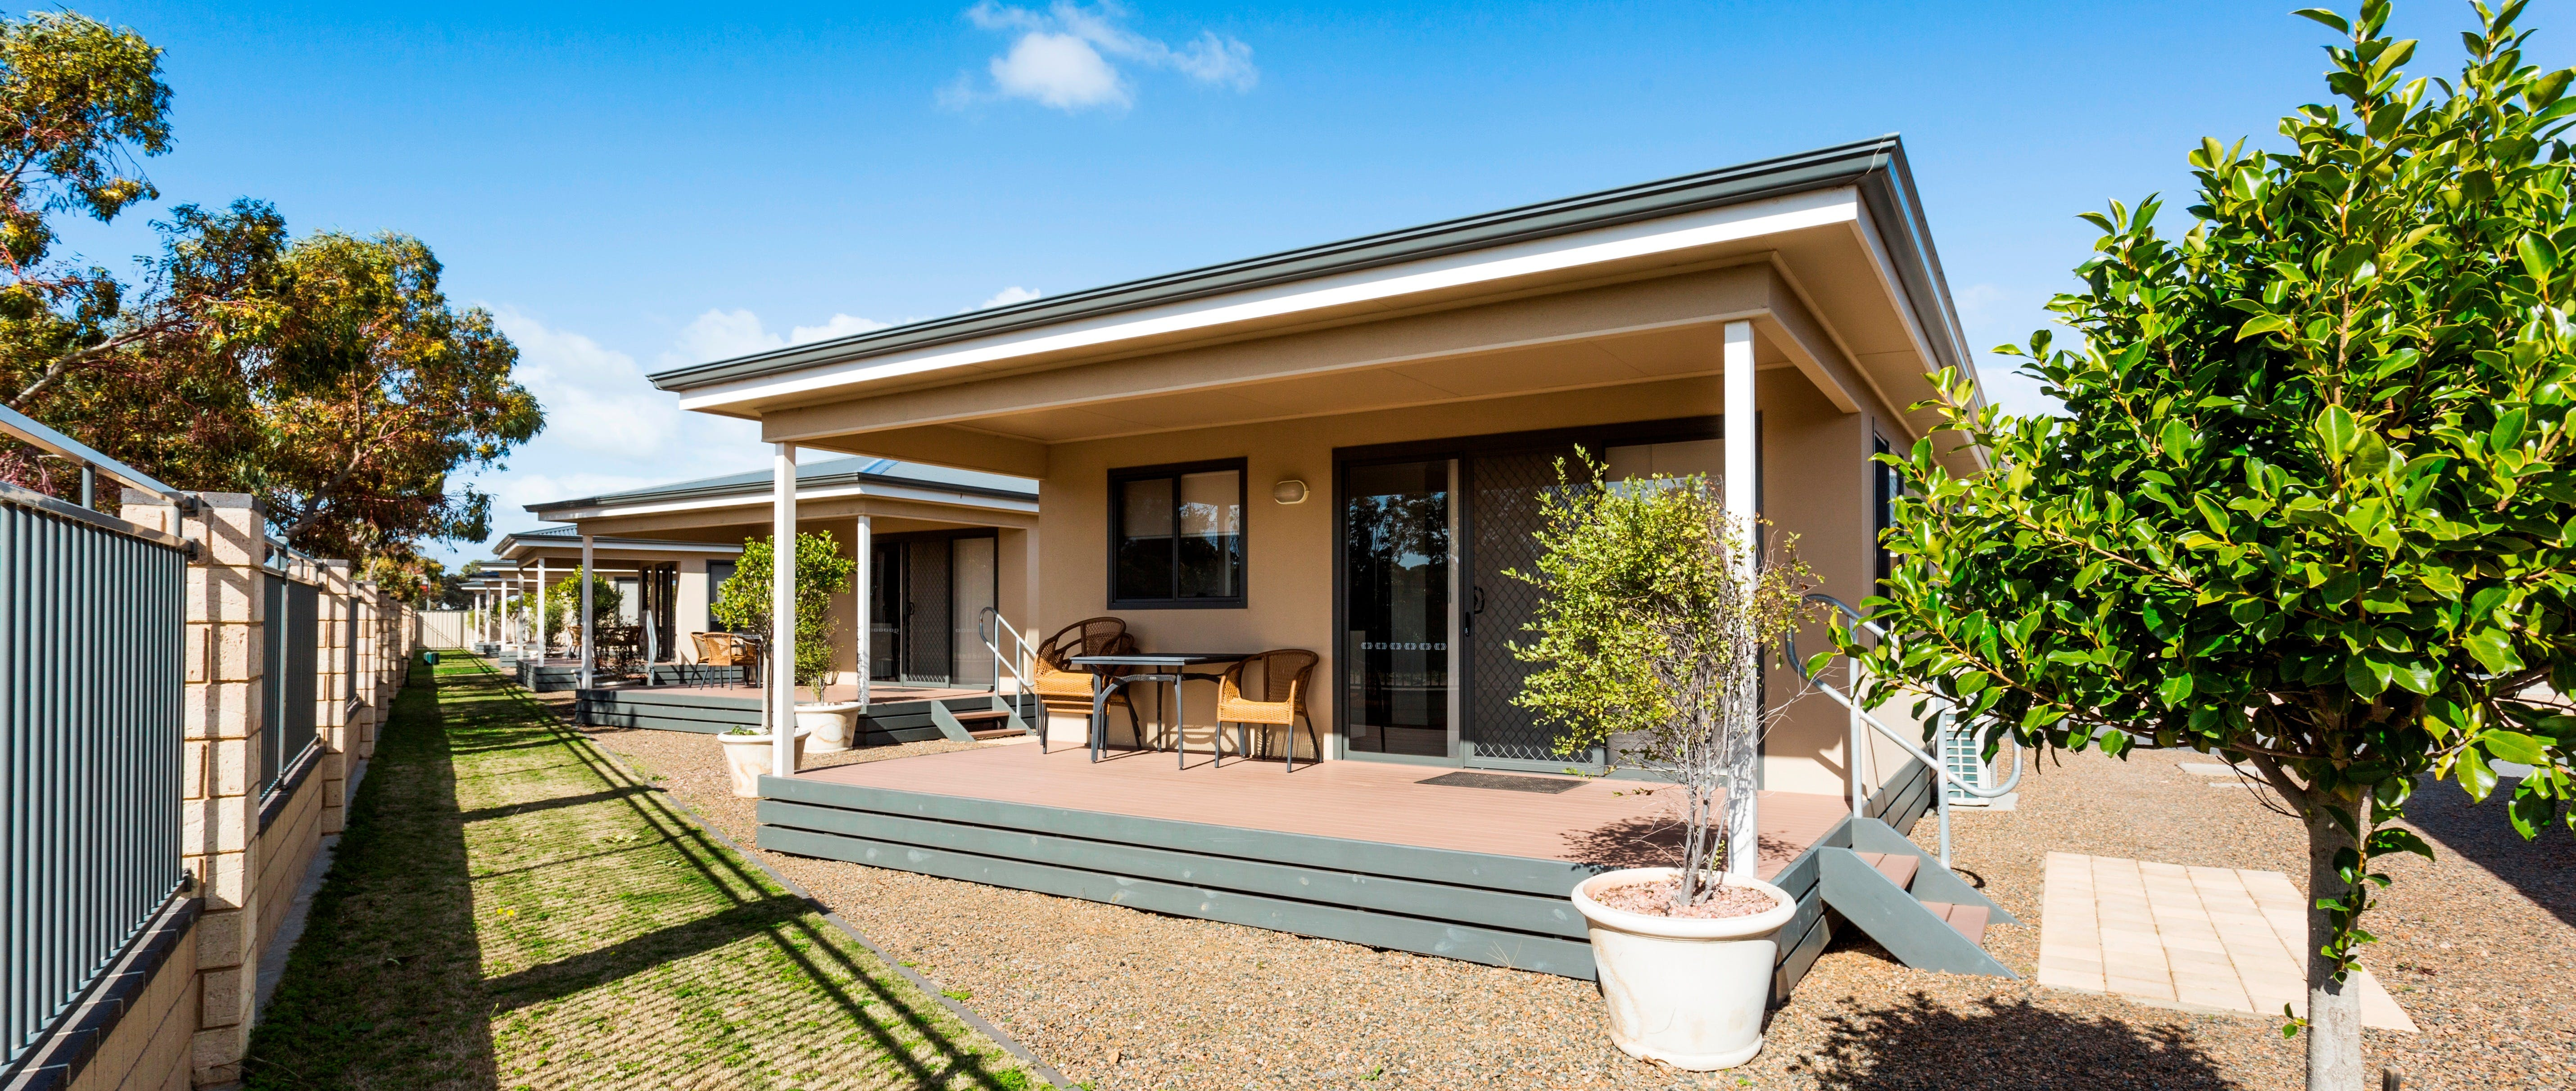 Tumby Villas - Accommodation in Brisbane